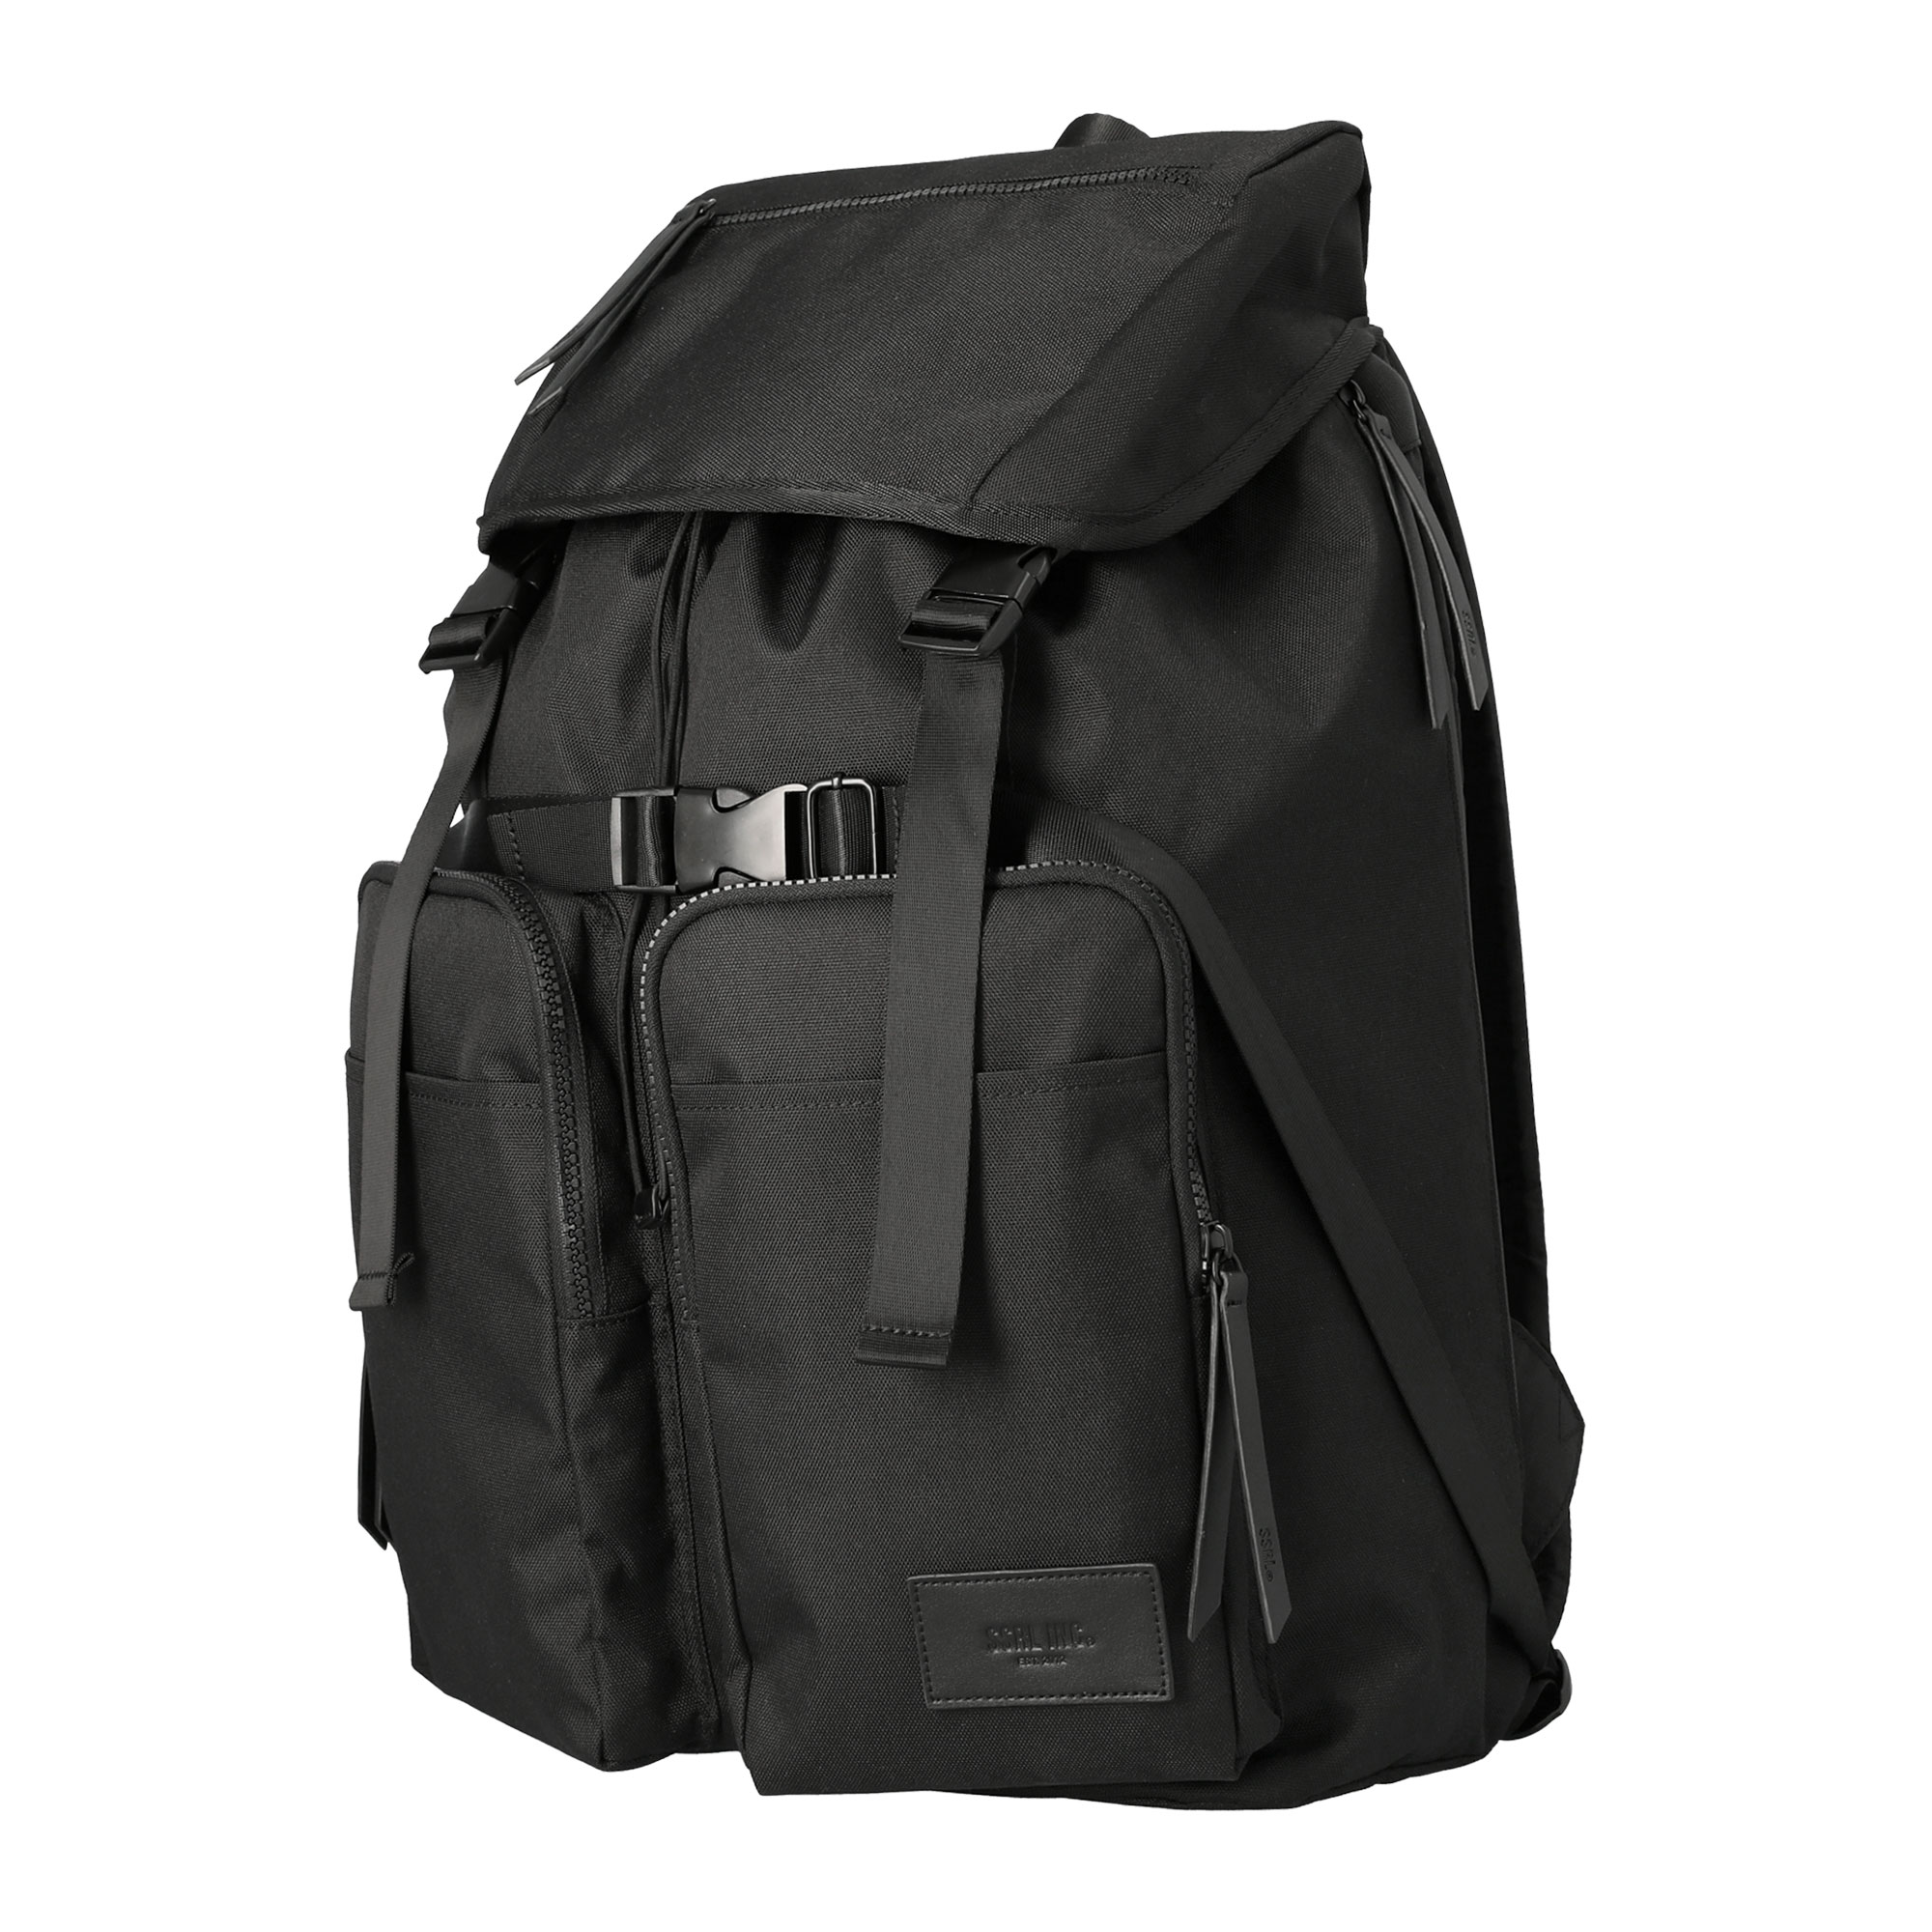 majestic dual pocket rucksack / black